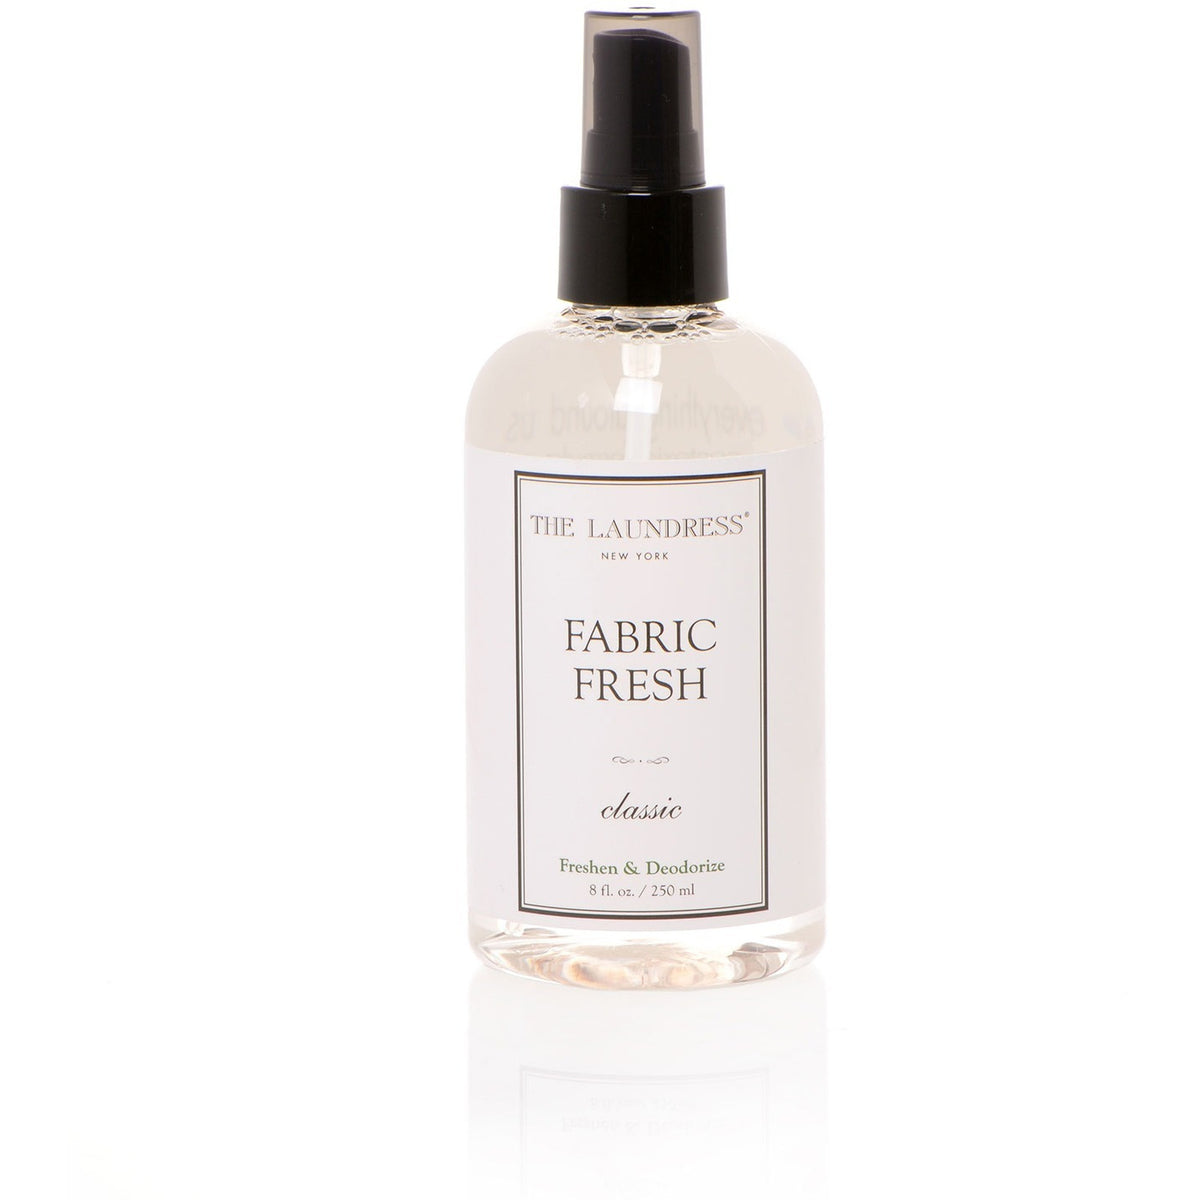 the laundress | fabric fresh, classic spray - KISS AND MAKEUP